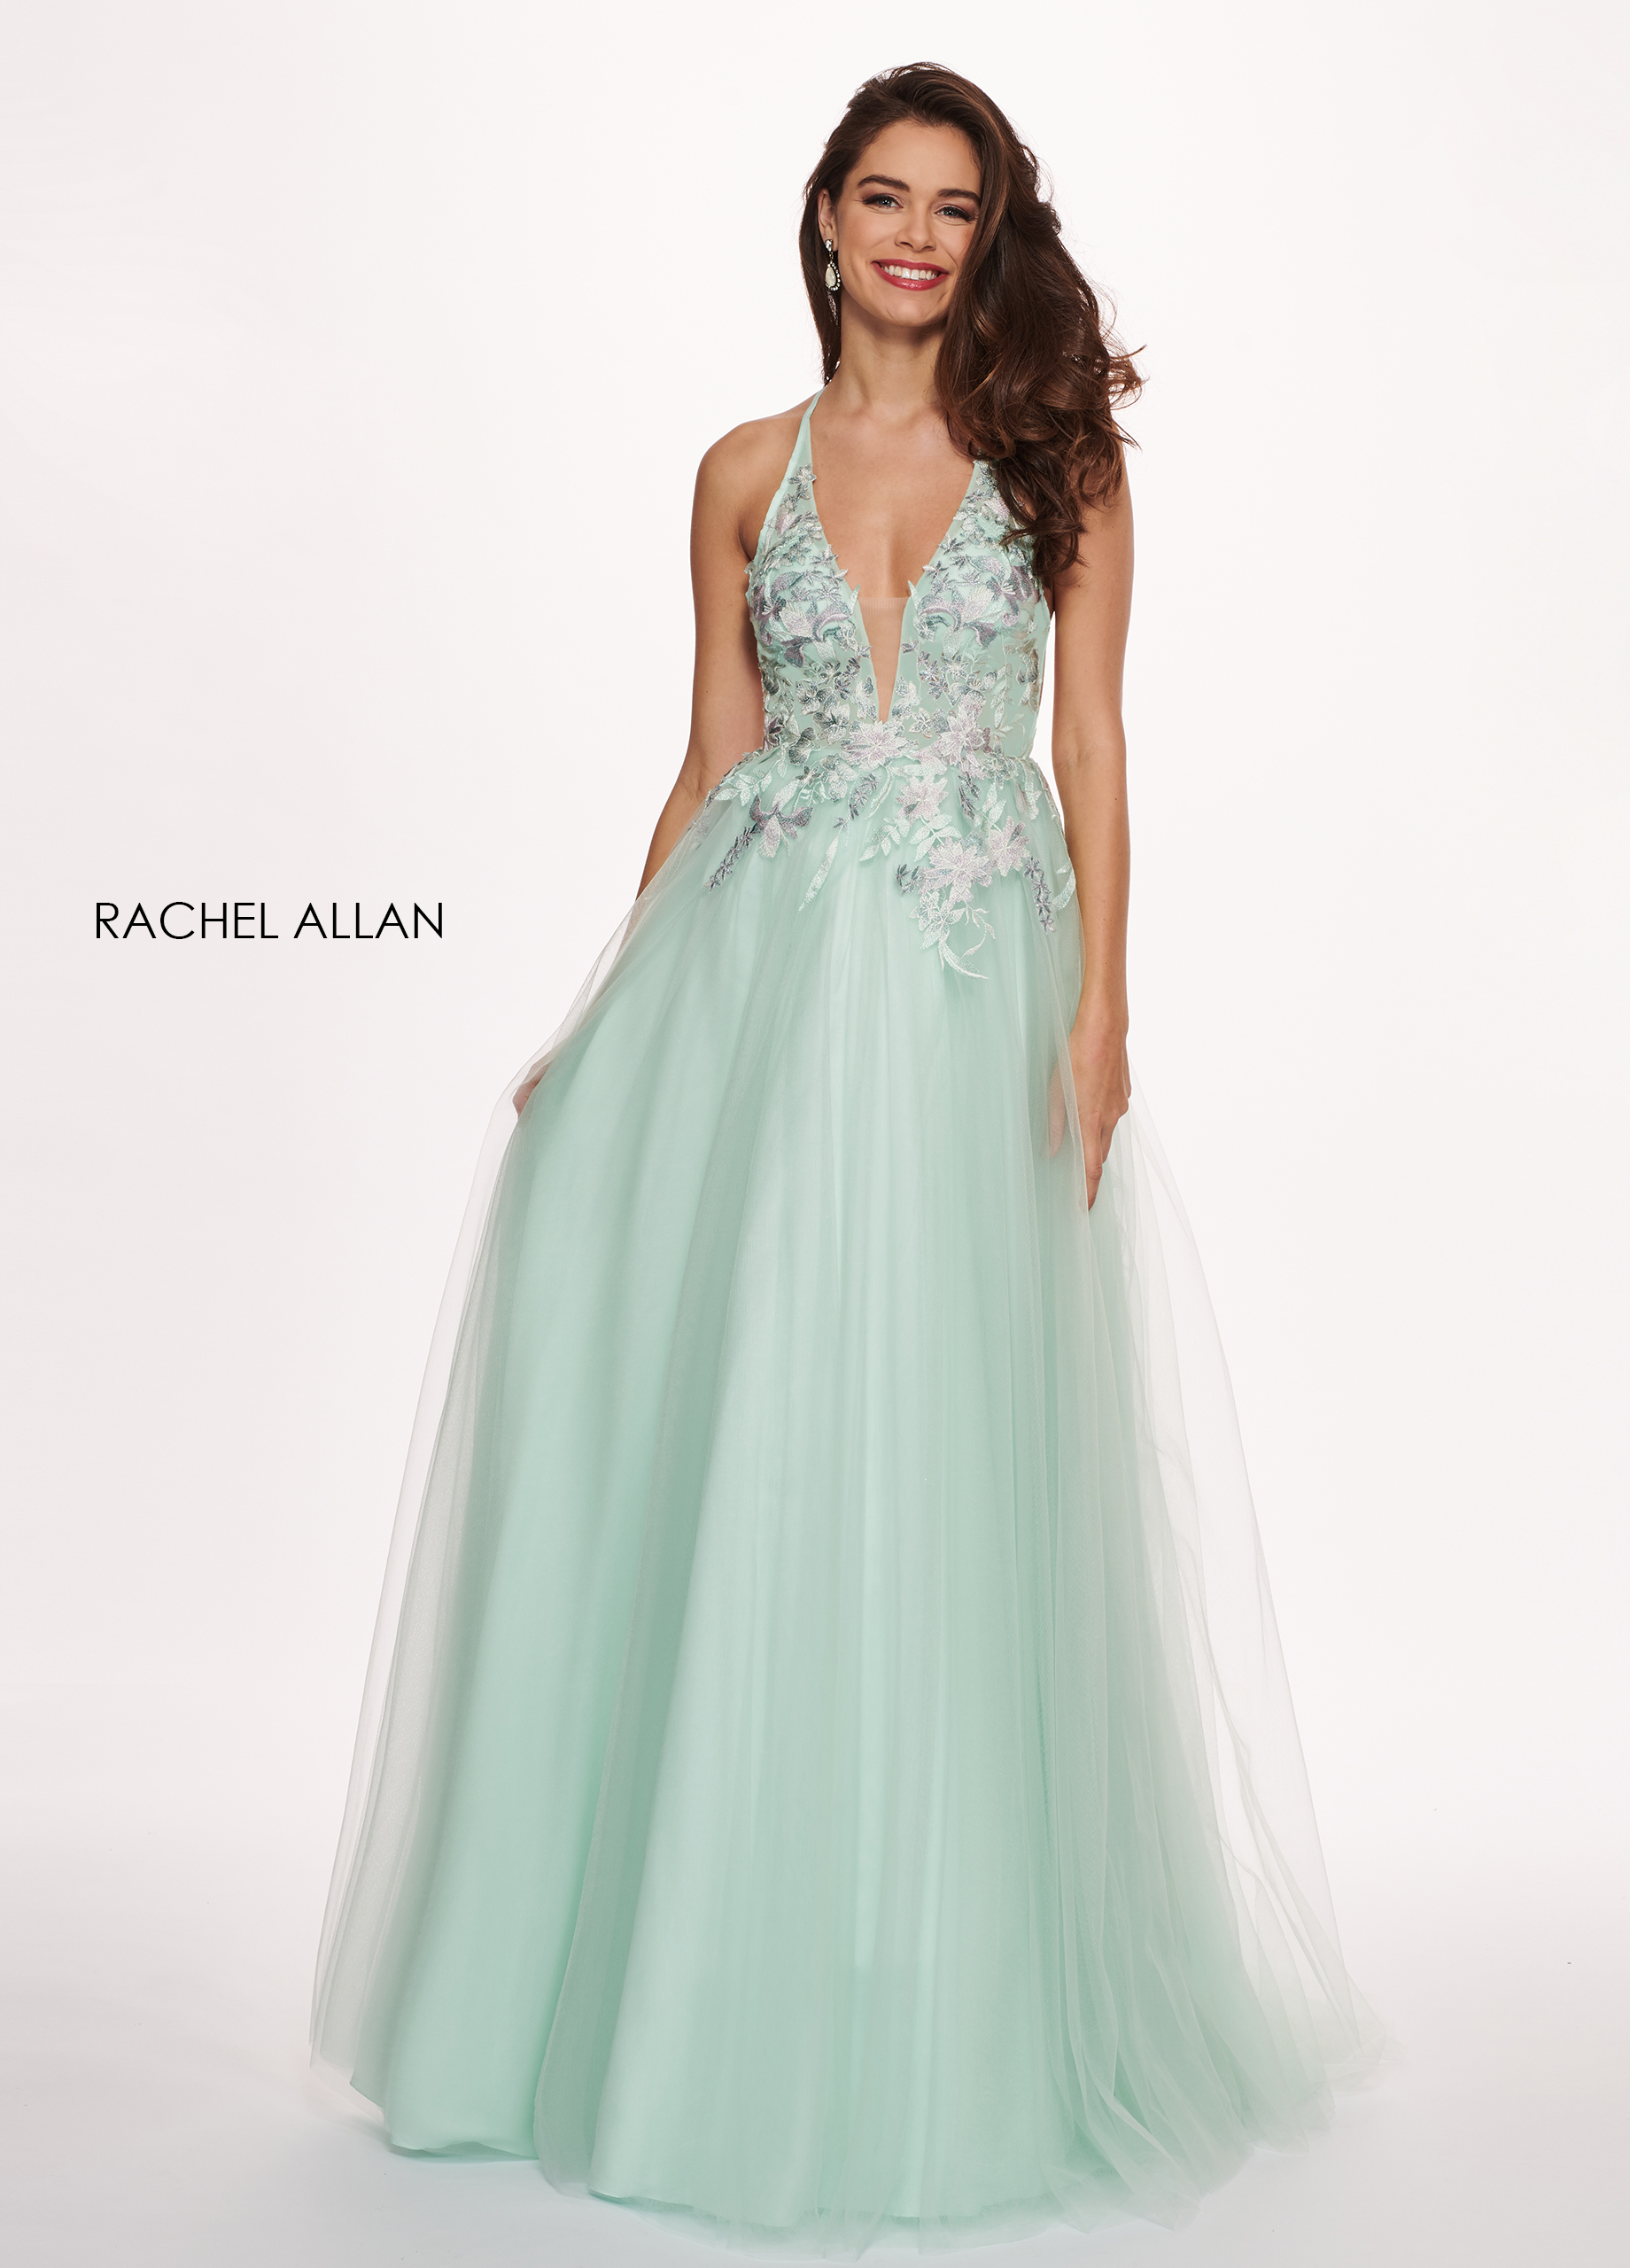 Halter A-Line Prom Dresses in Mint Color